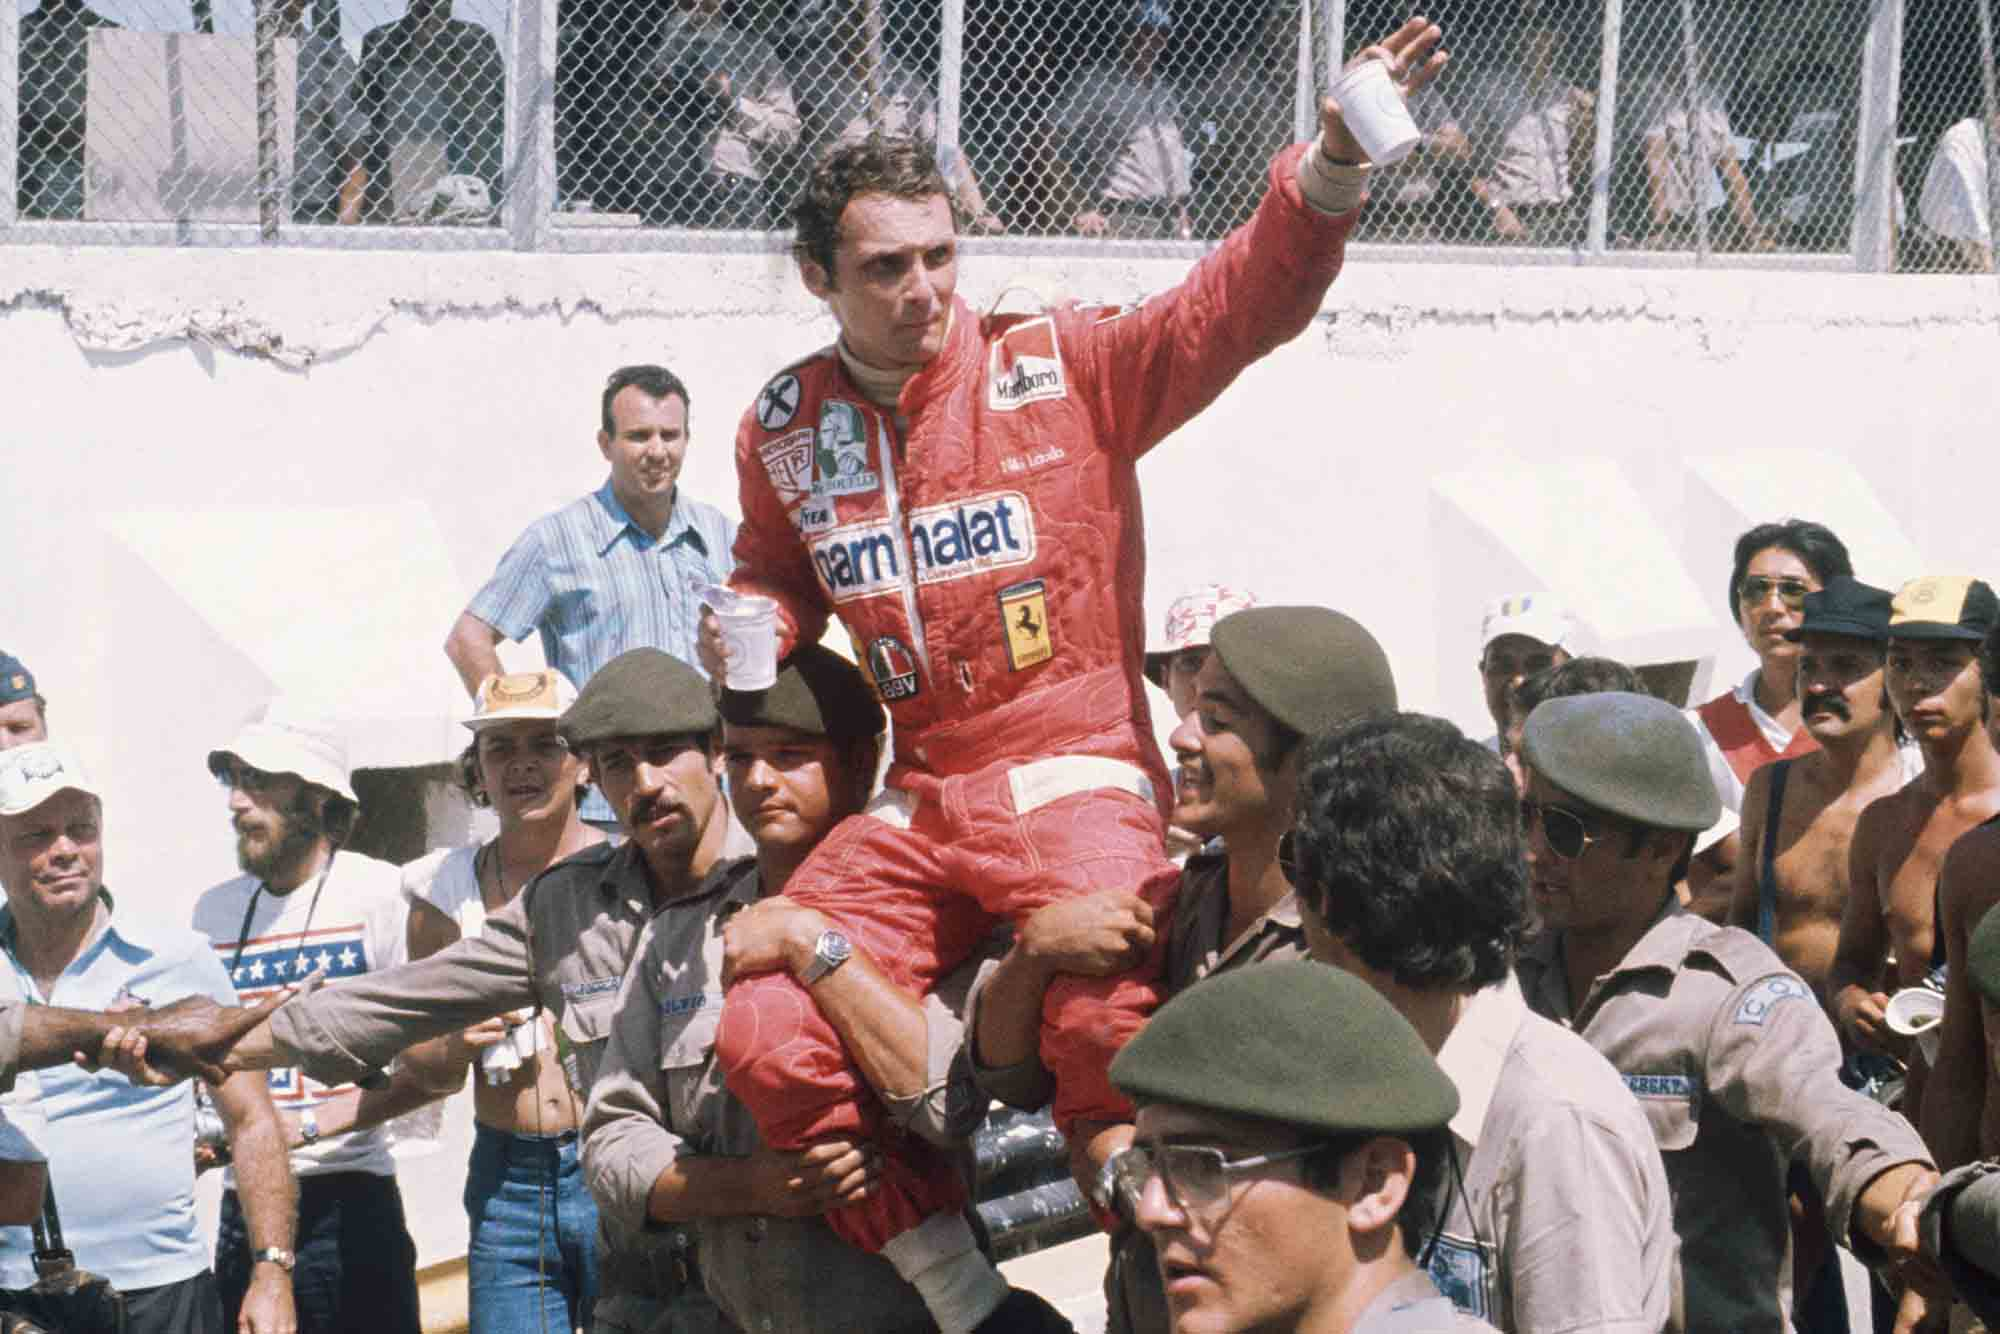 Niki Lauda is held aloft by Brazilian soldiers after winning the 1976 Brazilian Grand Prix for Ferrari